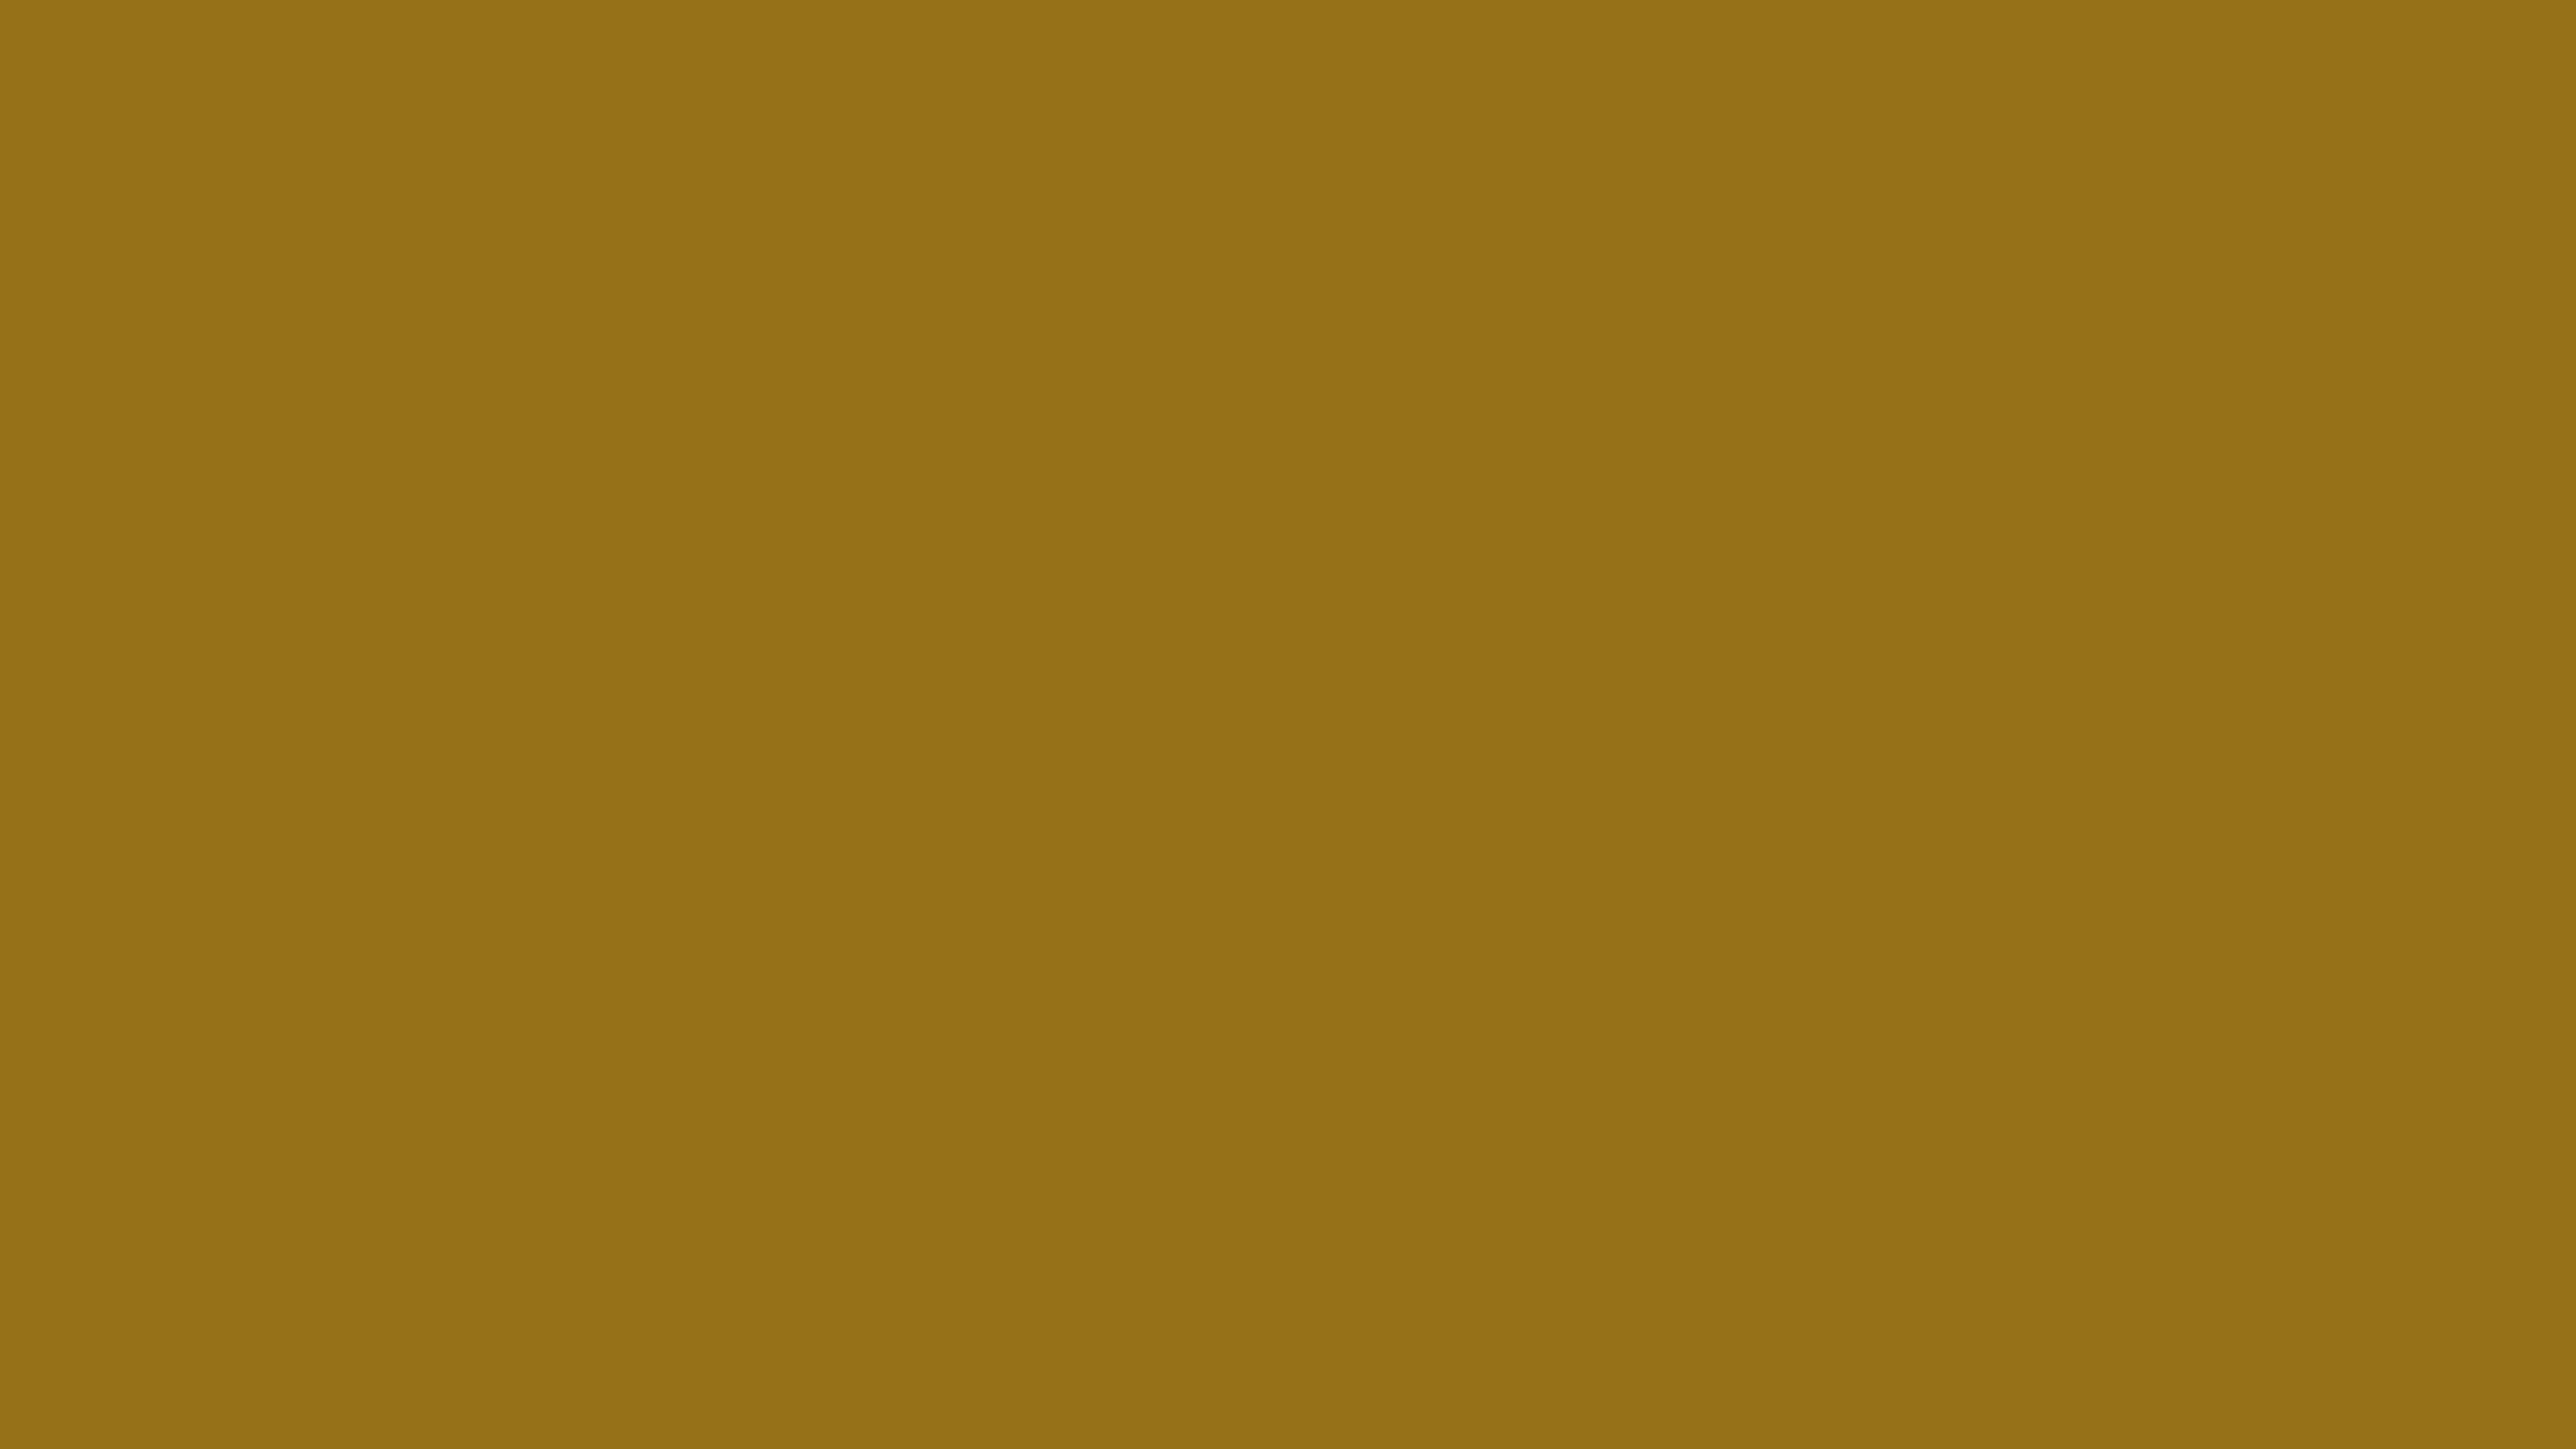 7680x4320 Drab Solid Color Background